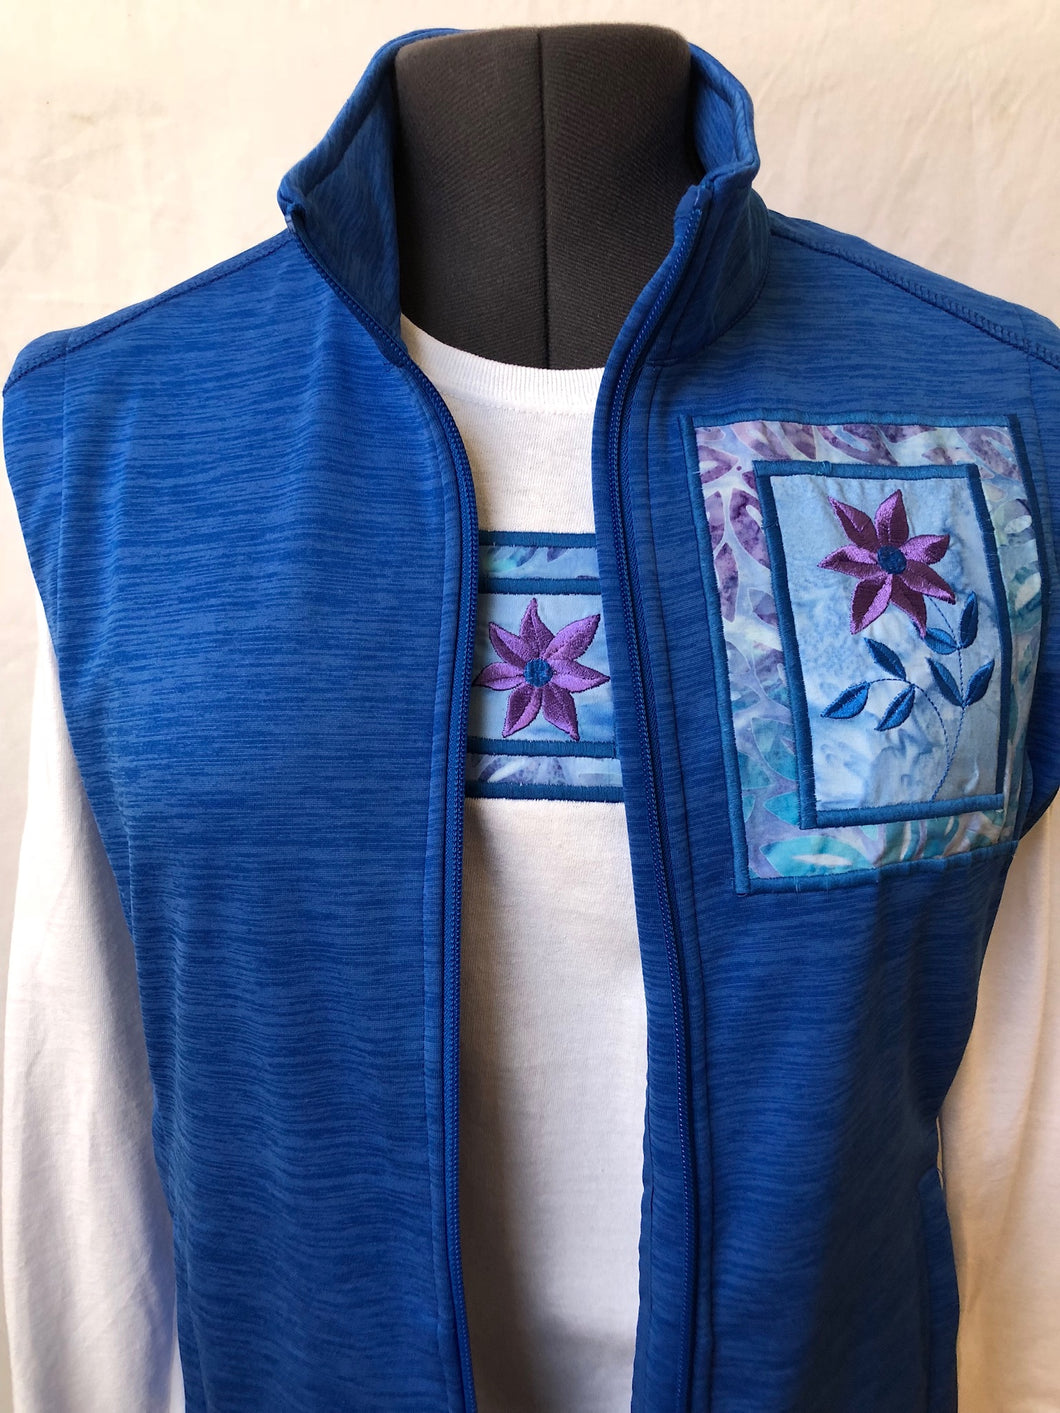 Royal Heather Blue Vest Matching Long Sleeve T-Shirt